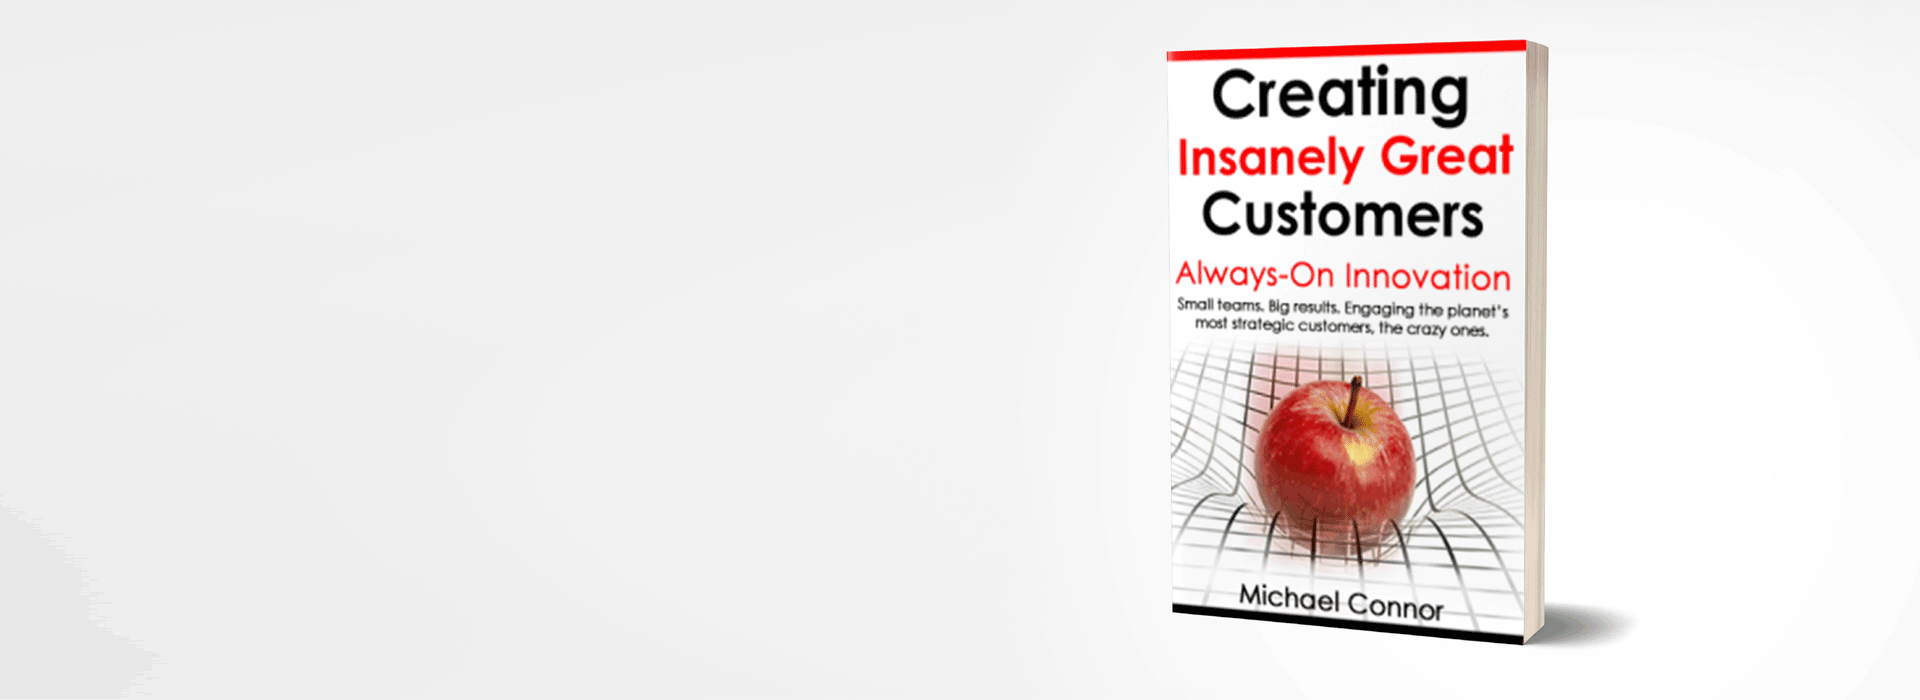 Spice Catalyst Book Creating Insanely Great Customers